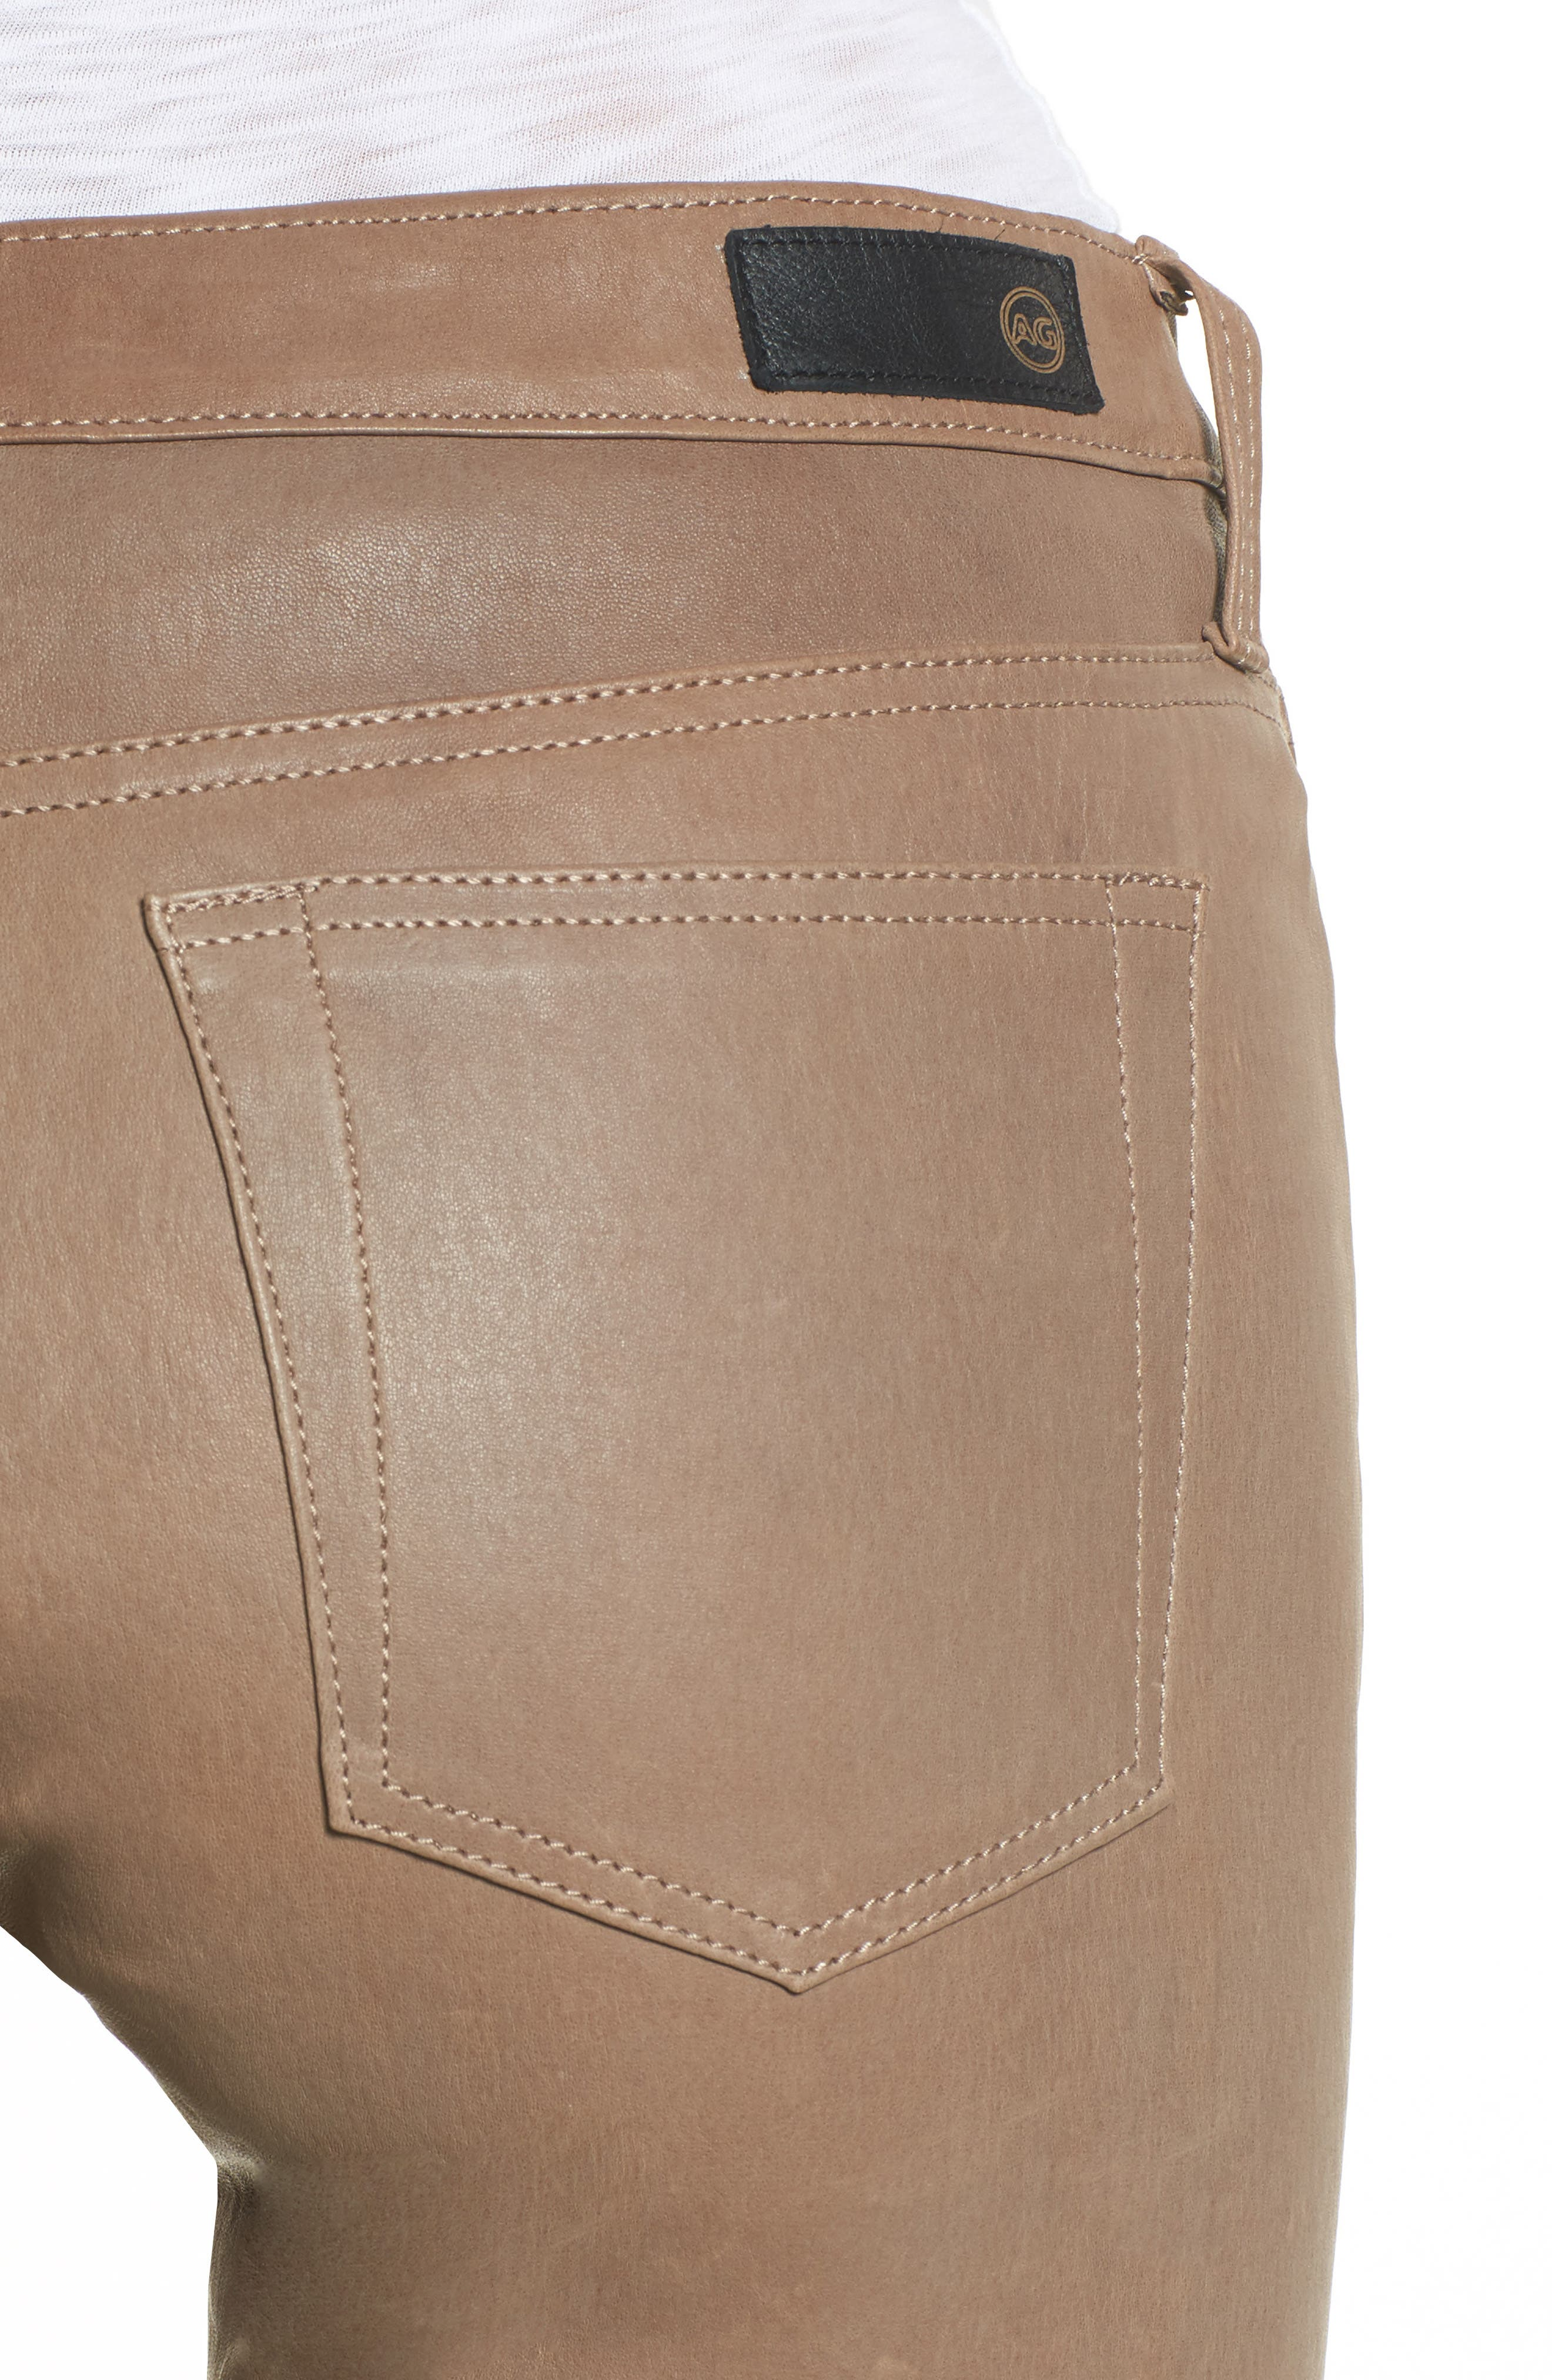 The Legging Super Skinny Leather Pants,                             Alternate thumbnail 4, color,                             RUSTIC TAUPE